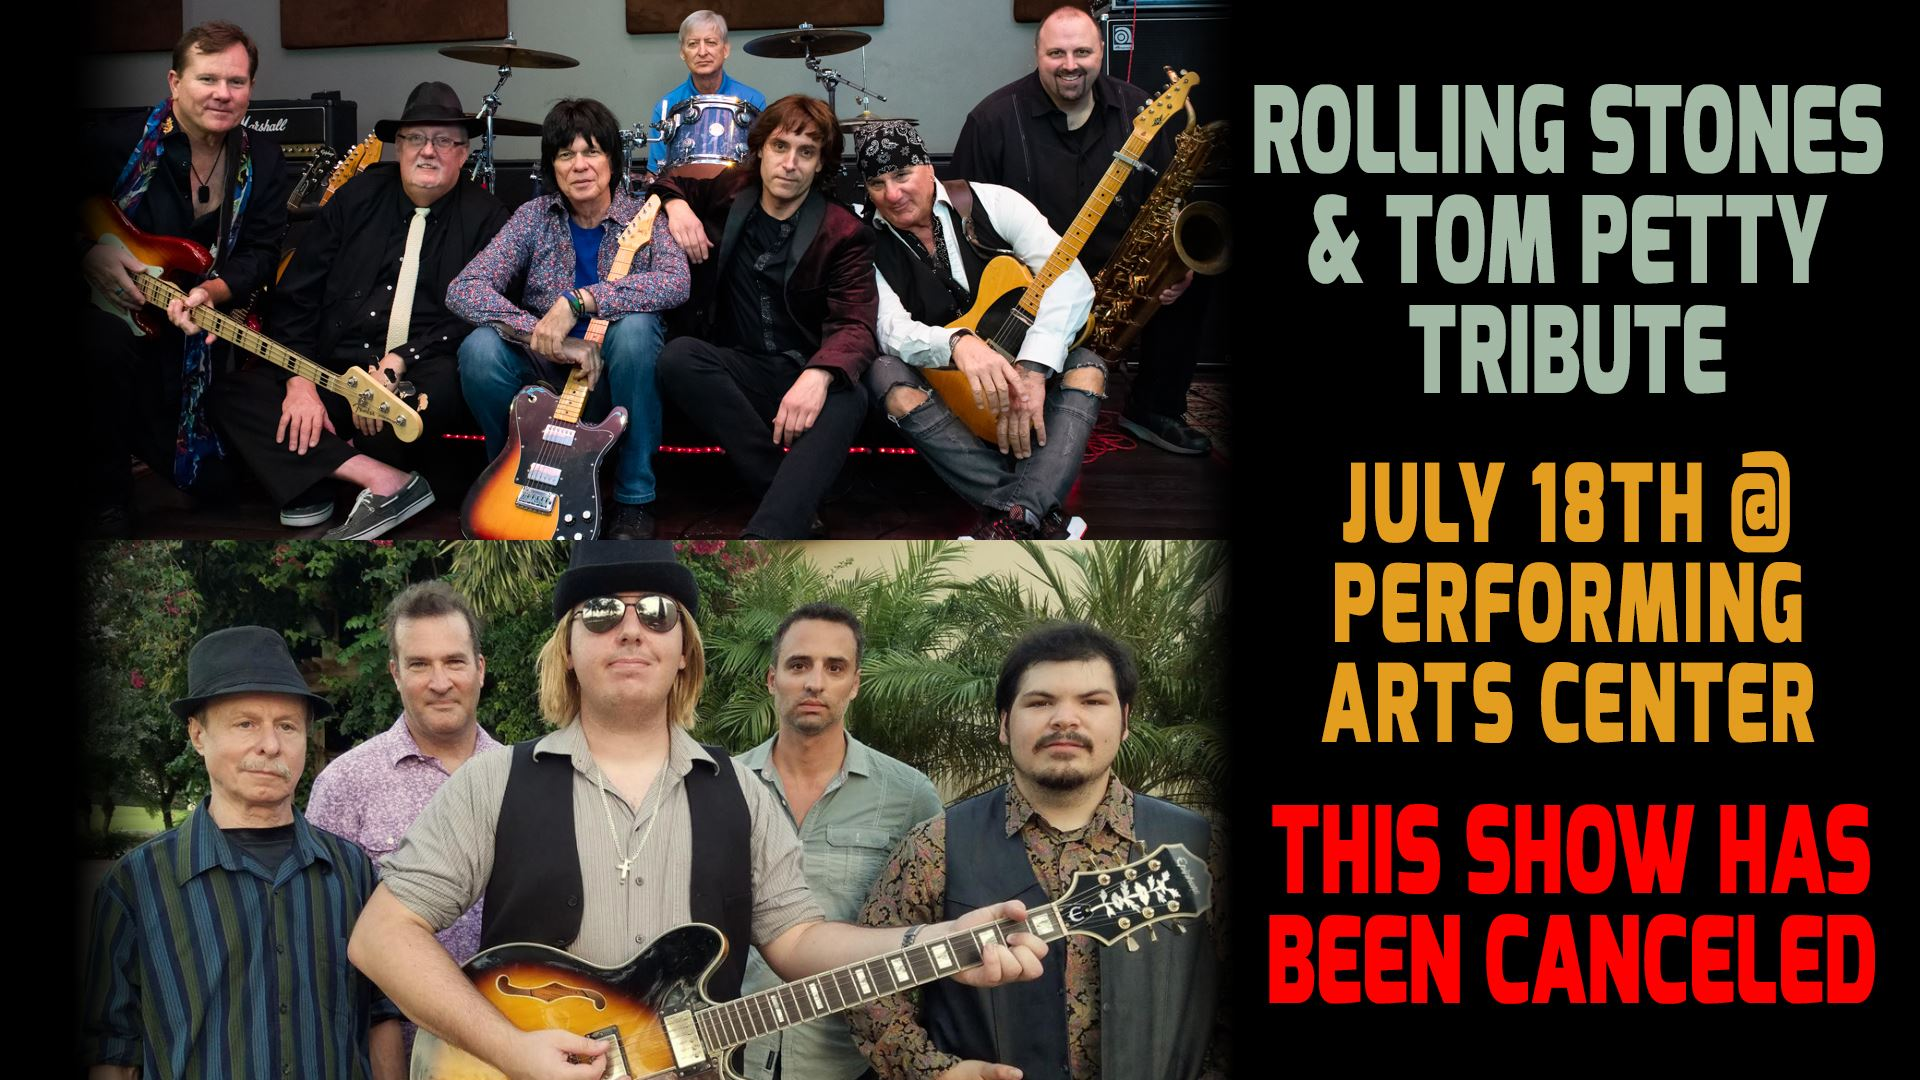 rolling-stones-tom-petty_July-cancelled-fb